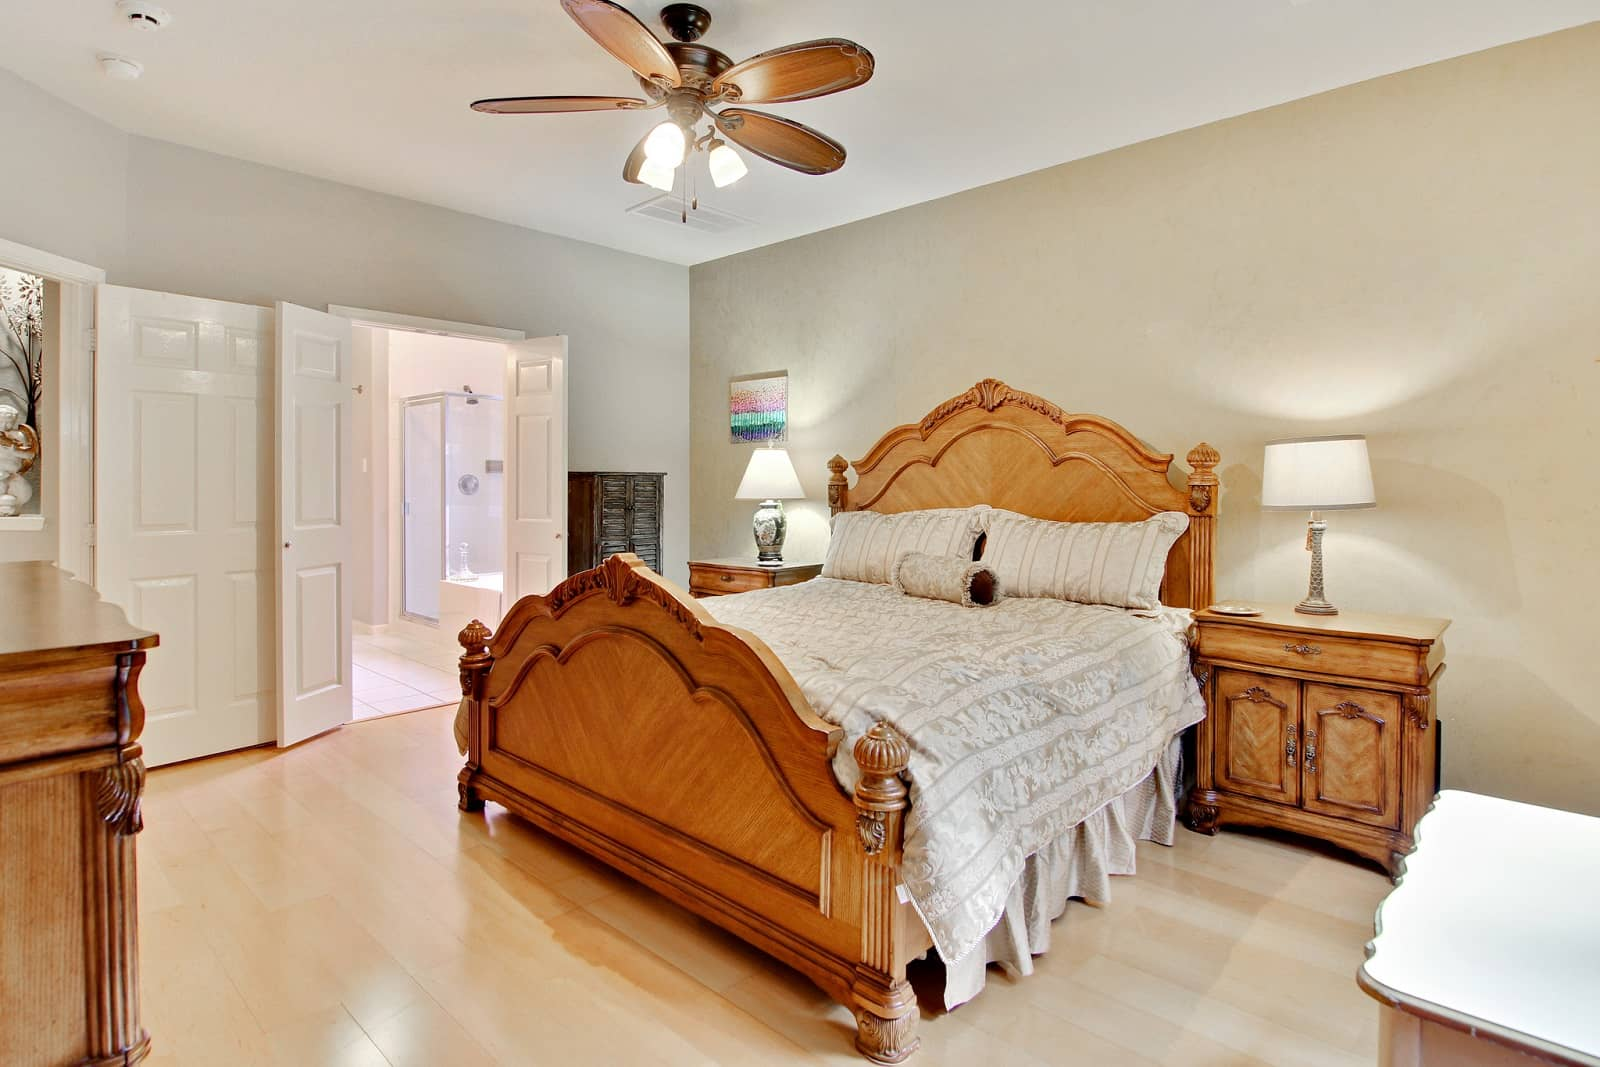 Real Estate Photographers in Conroe - TX - Bedroom View